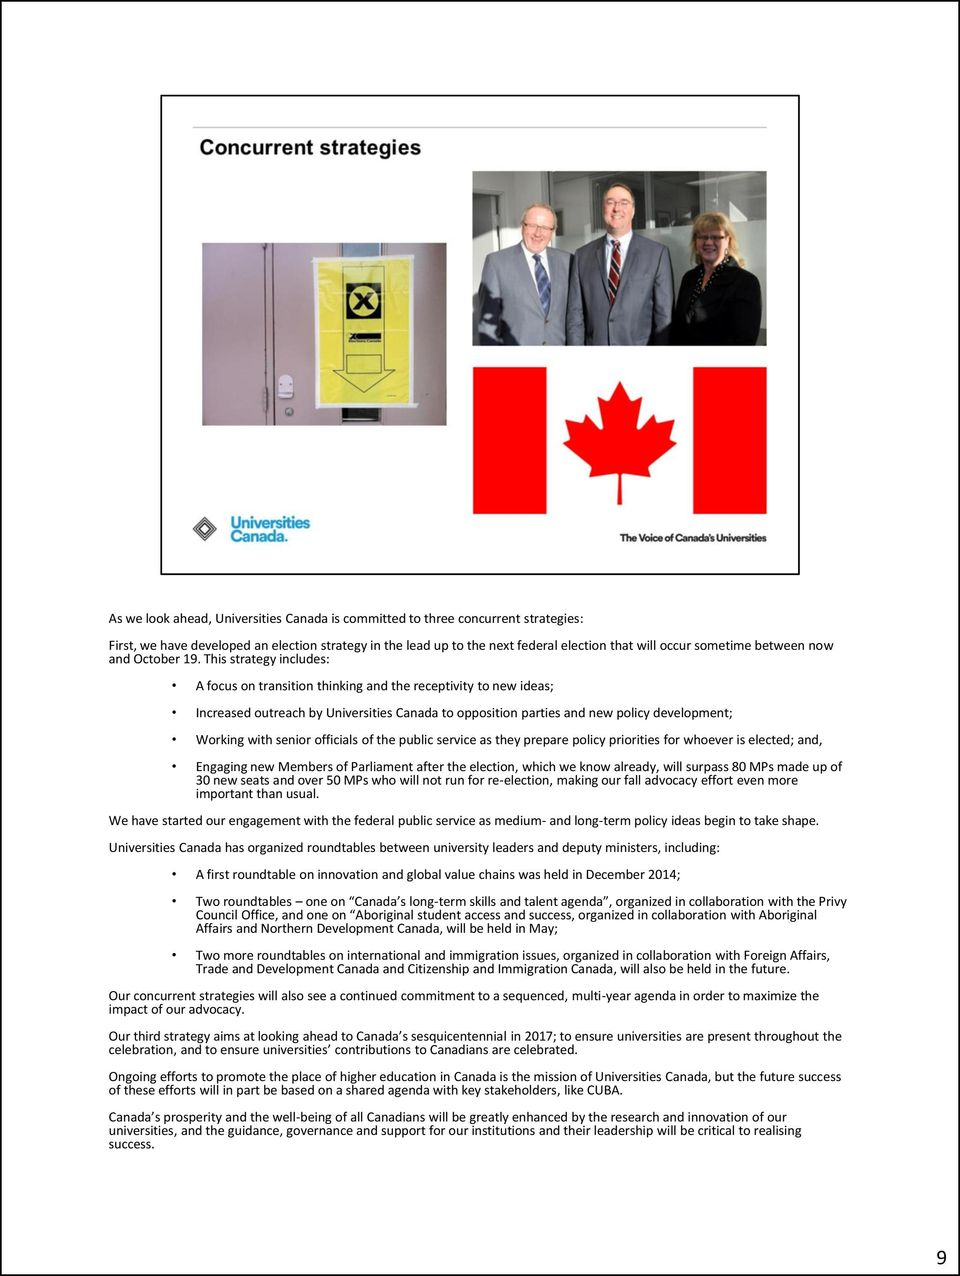 This strategy includes: A focus on transition thinking and the receptivity to new ideas; Increased outreach by Universities Canada to opposition parties and new policy development; Working with